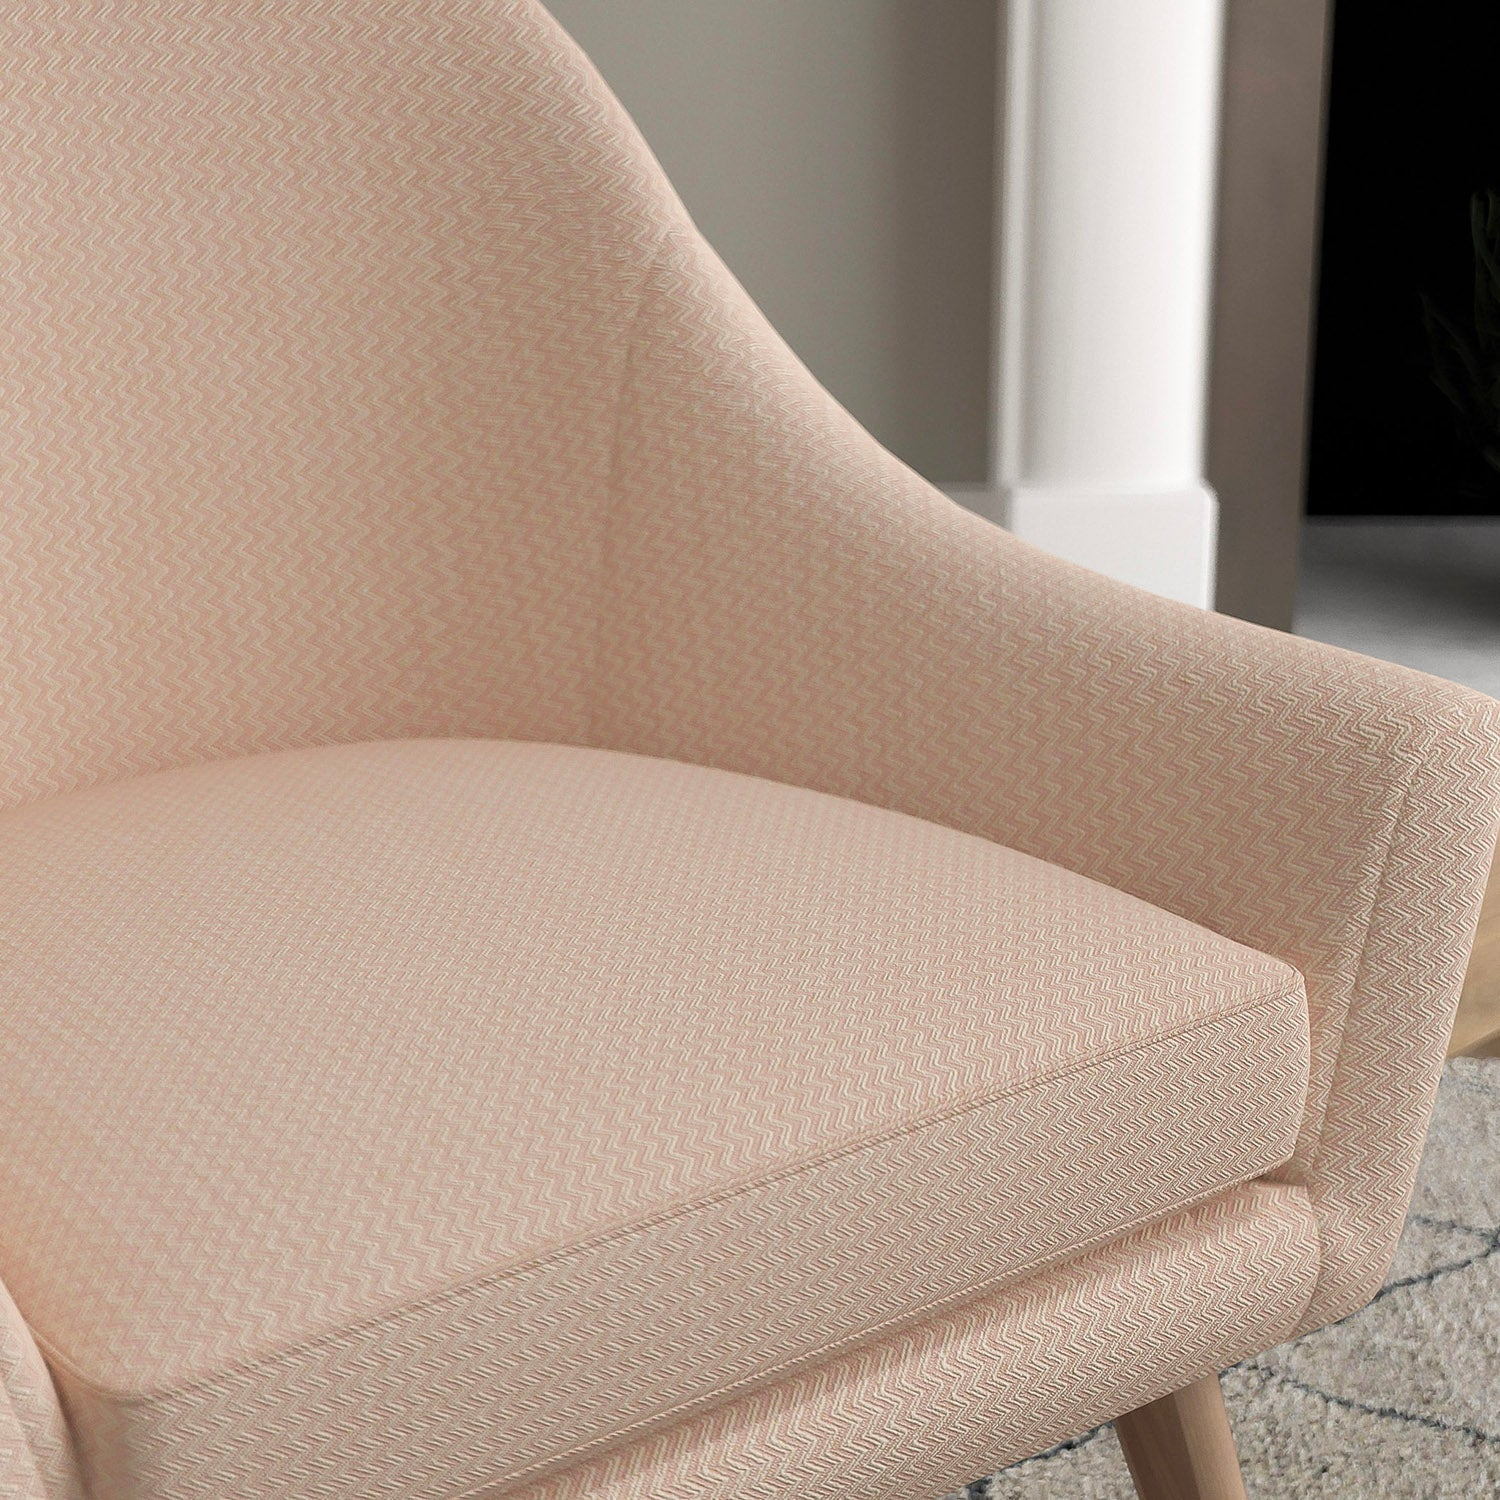 Chair in a pink upholstery fabric with chevron weave design and stain resistant finish